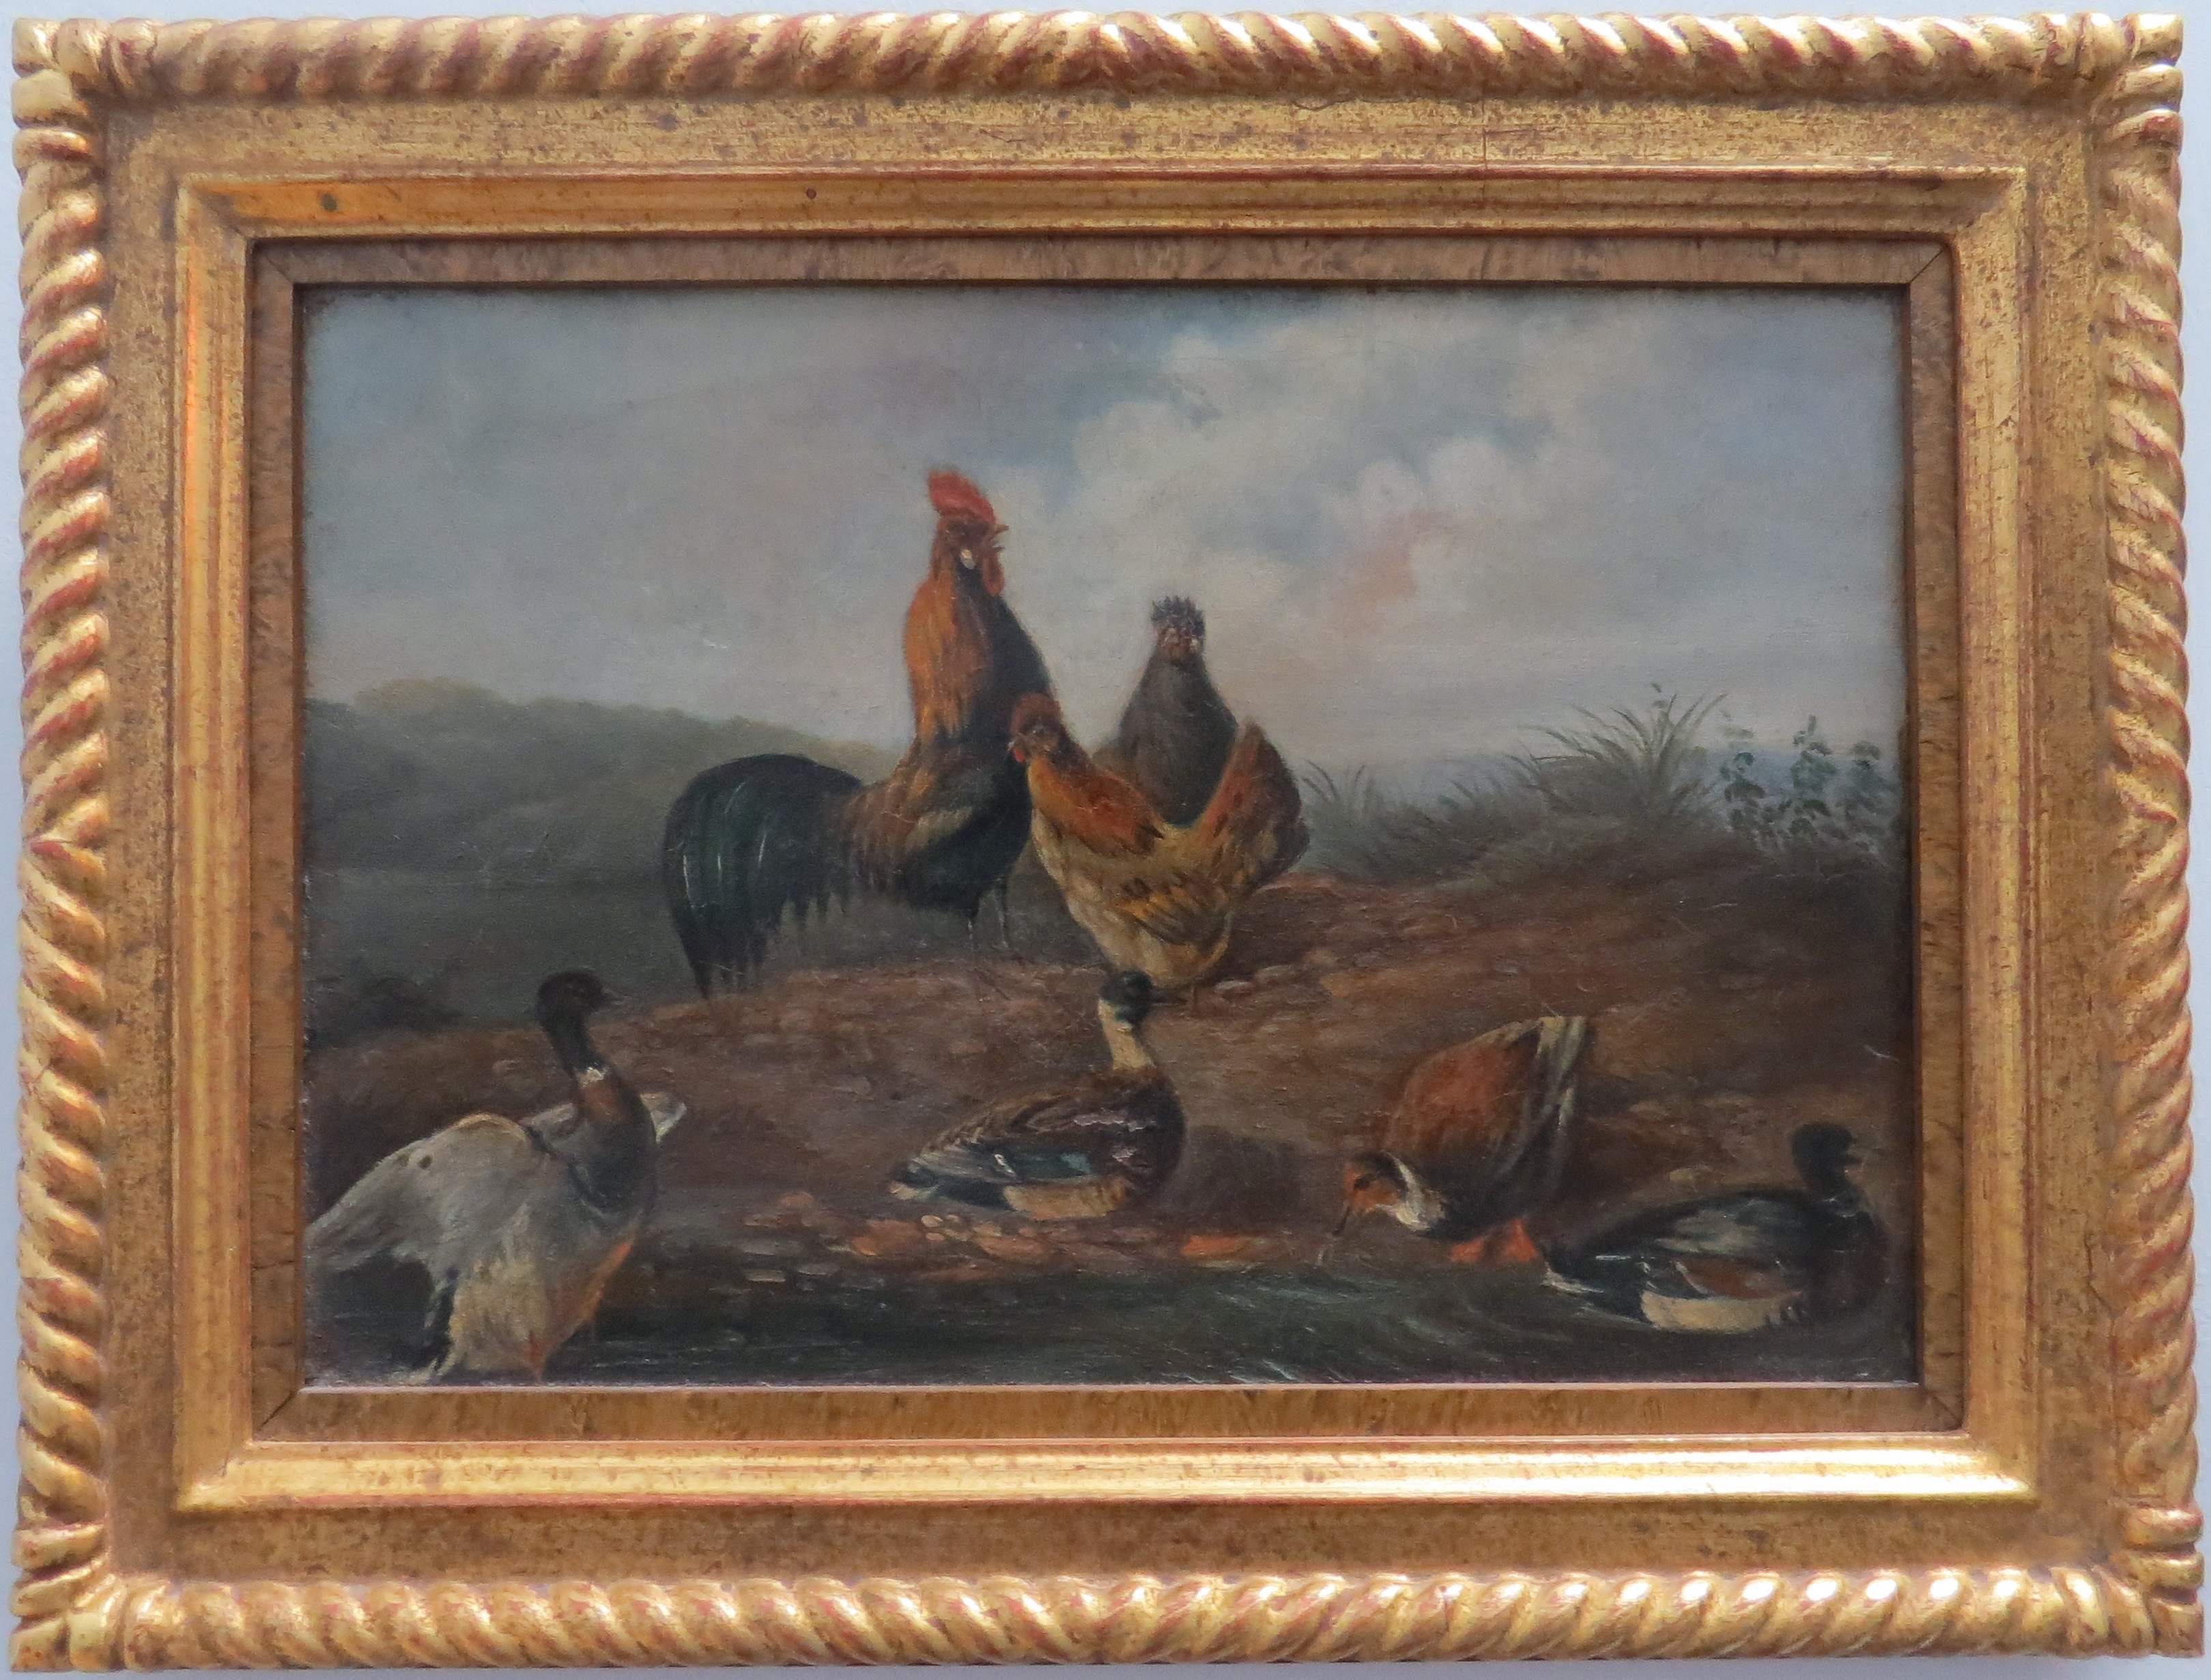 Oil on Canvas with Ducks, Roosters and Chickens